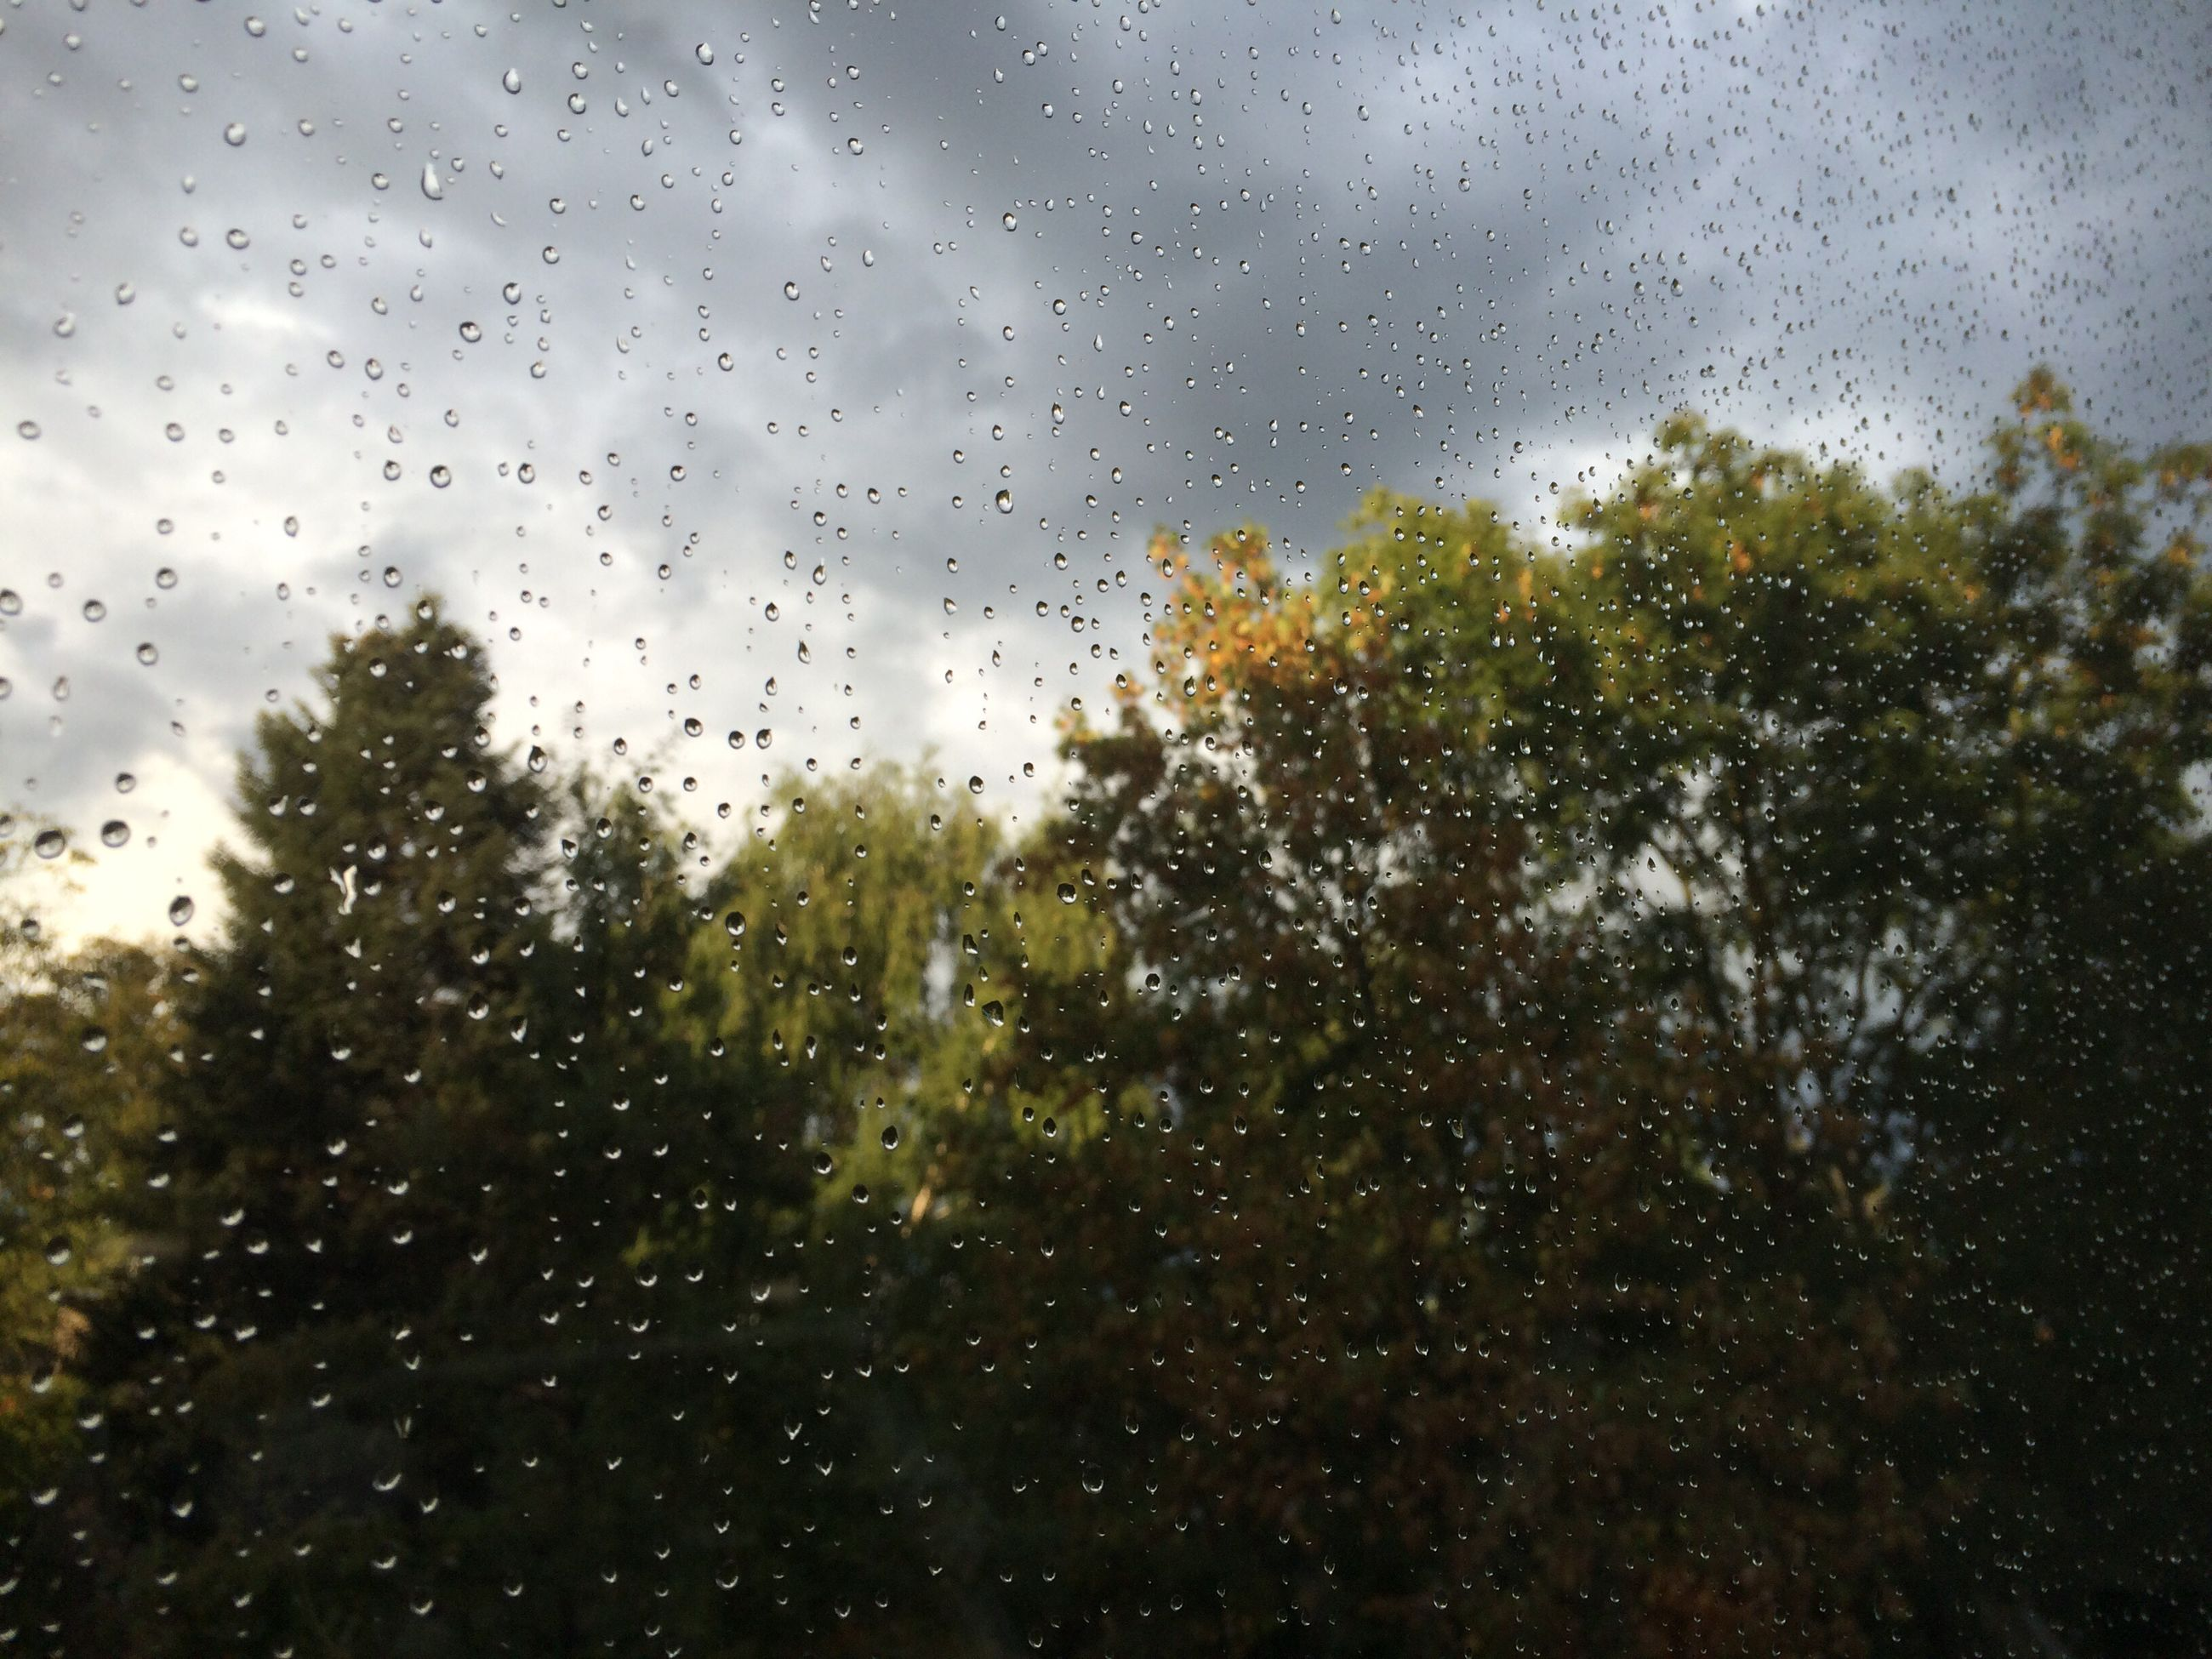 window, wet, drop, indoors, water, transparent, glass - material, rain, sky, tree, focus on foreground, nature, cloud, full frame, day, no people, scenics, tranquility, beauty in nature